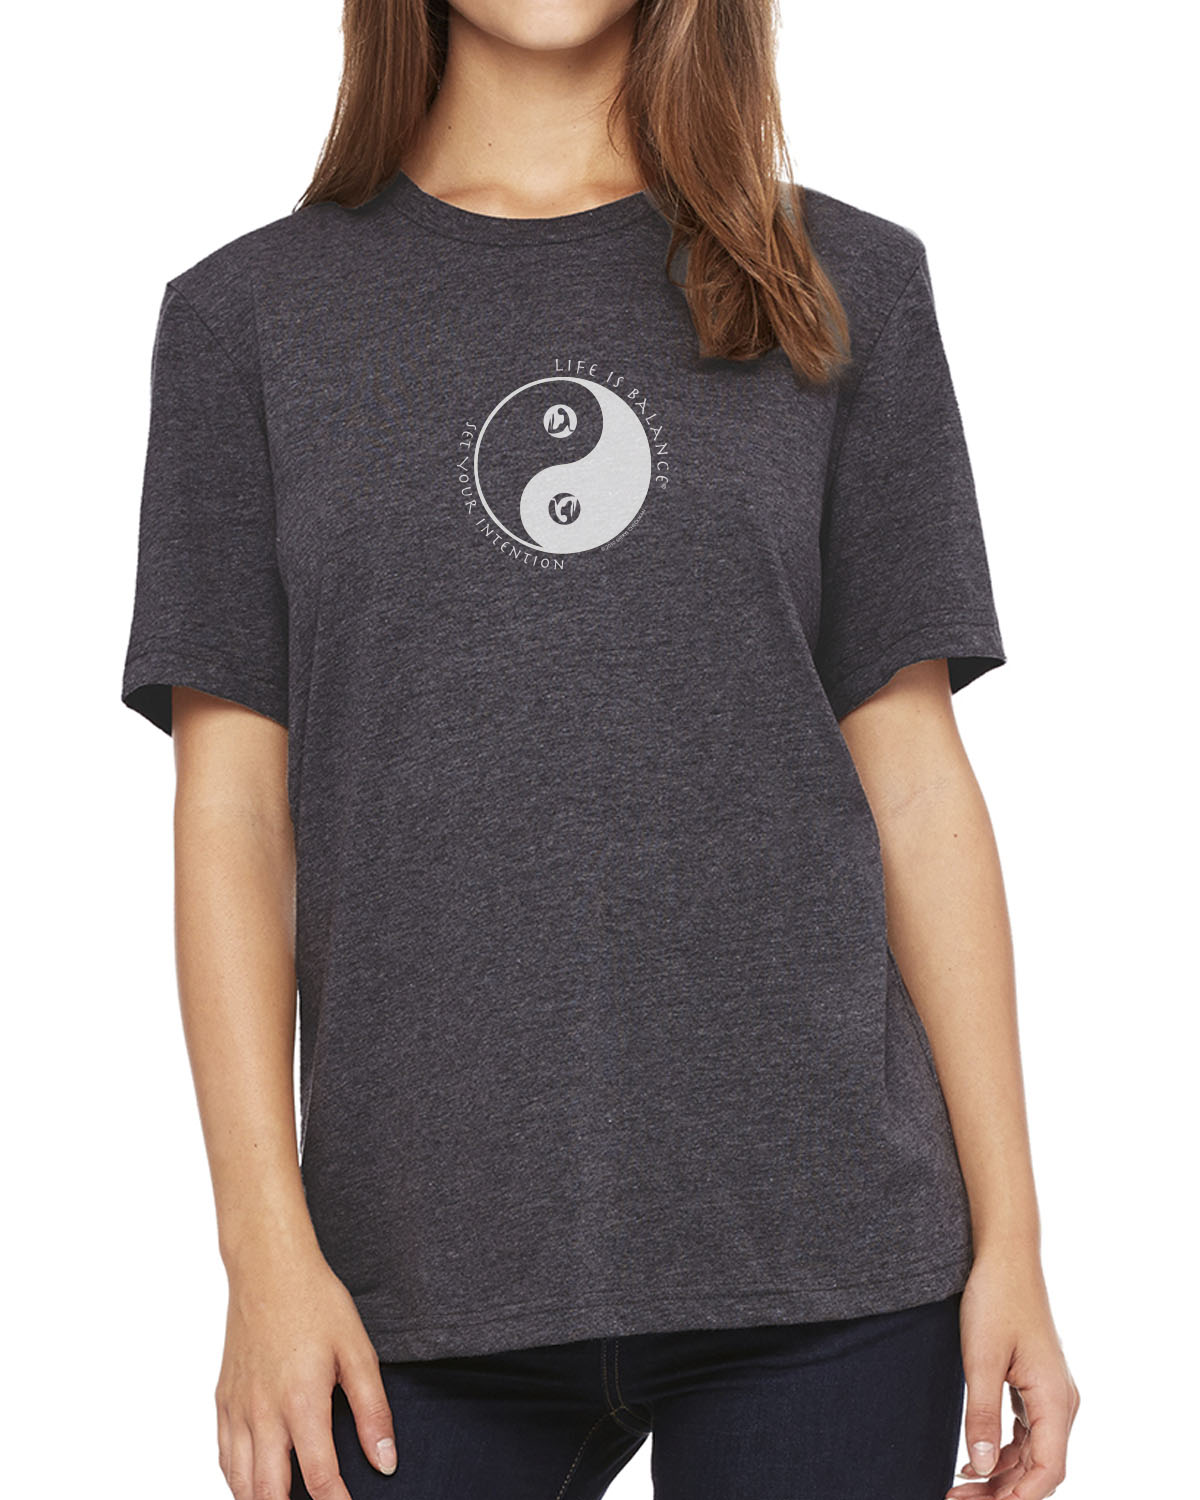 Women's short sleeve yoga t-shirt (Dark Gray Heather)